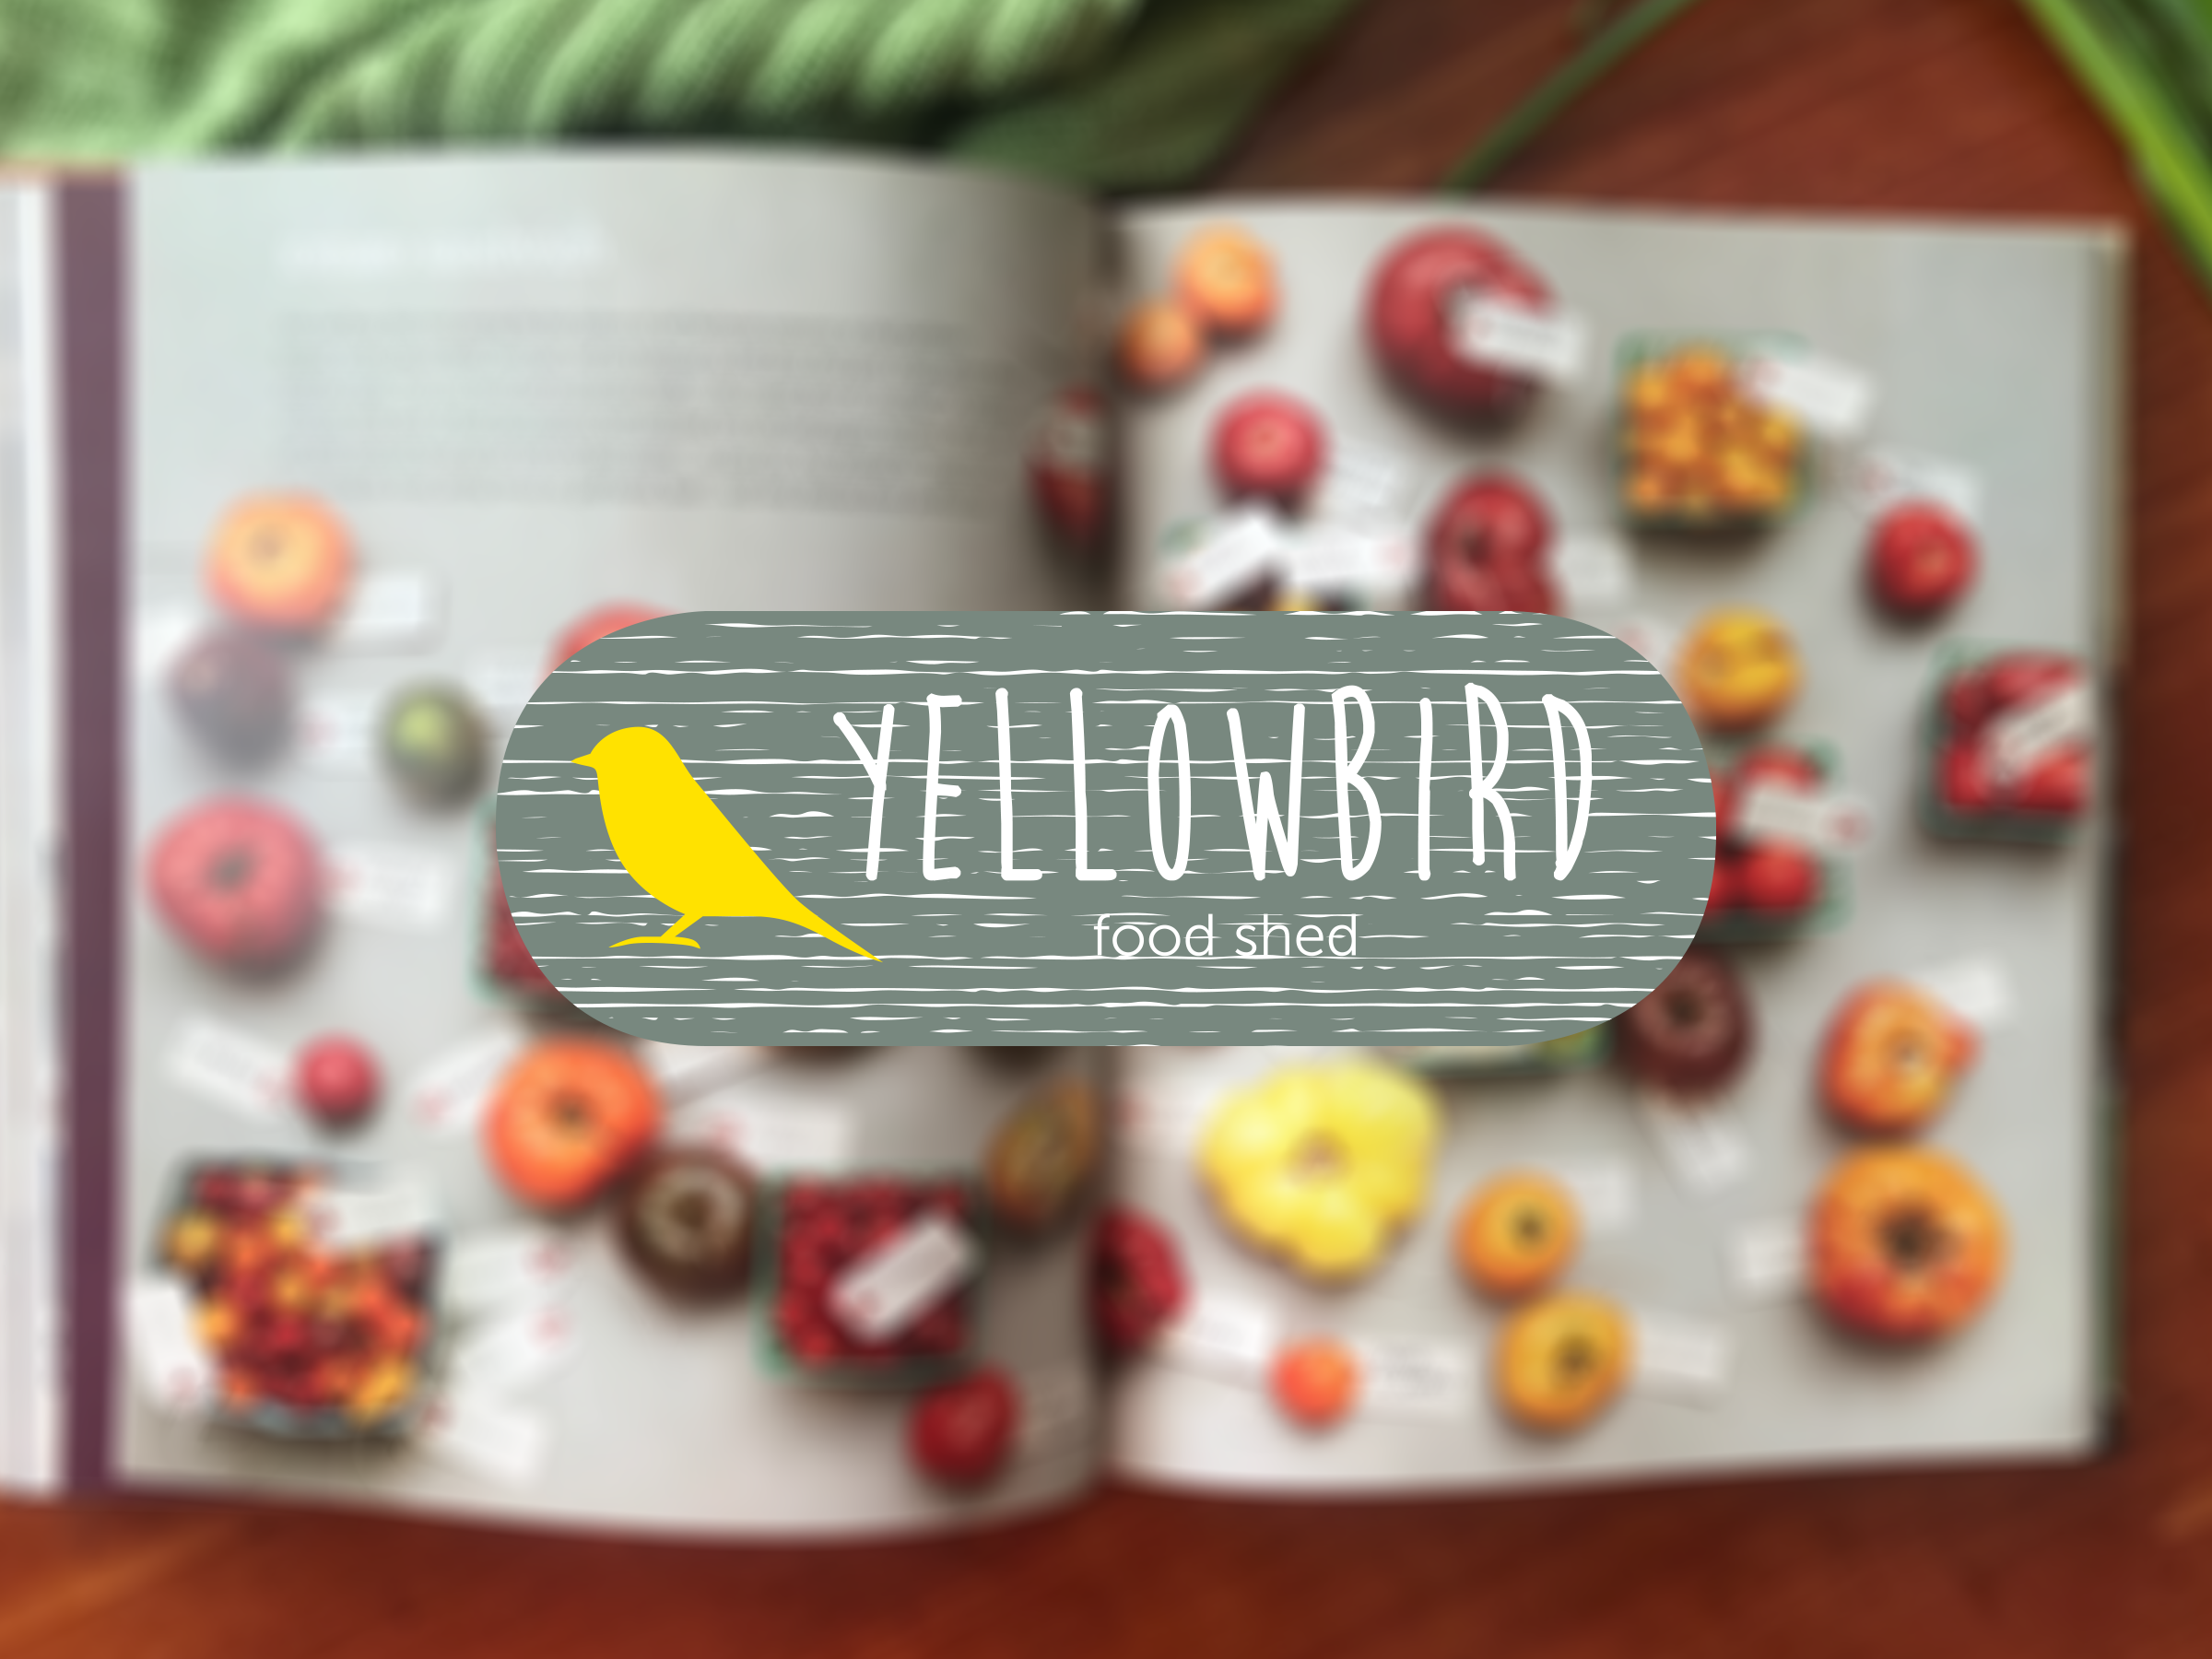 YELLOW_BIRD_FOOD_SHED_COVER_2400X1800.png